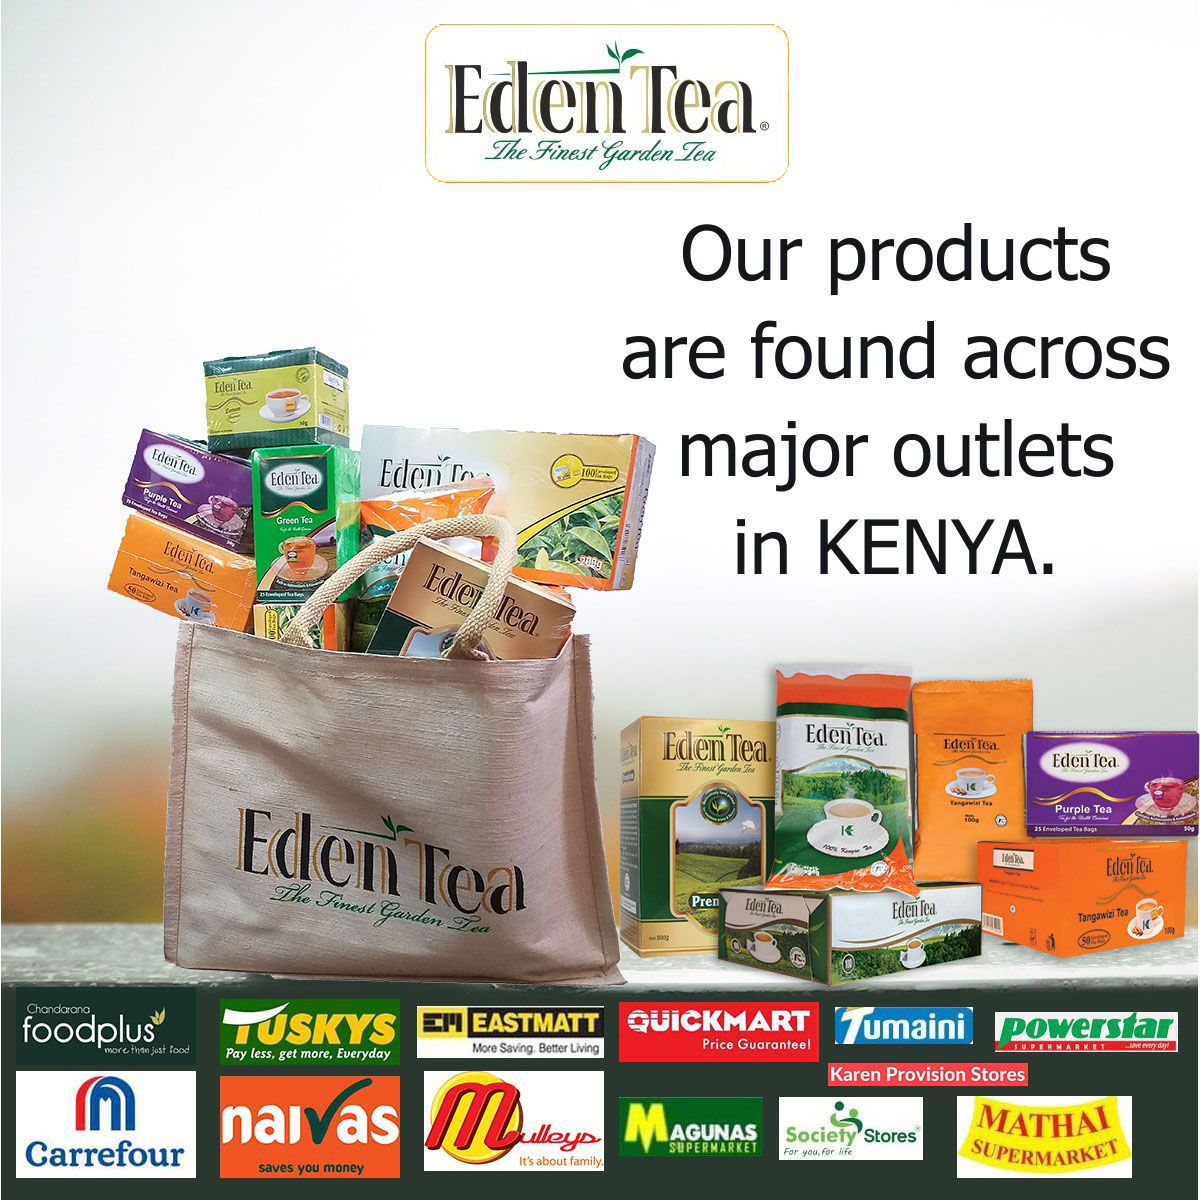 Our Products Are Found Across Major Outlets In Kenya Like Tuskys